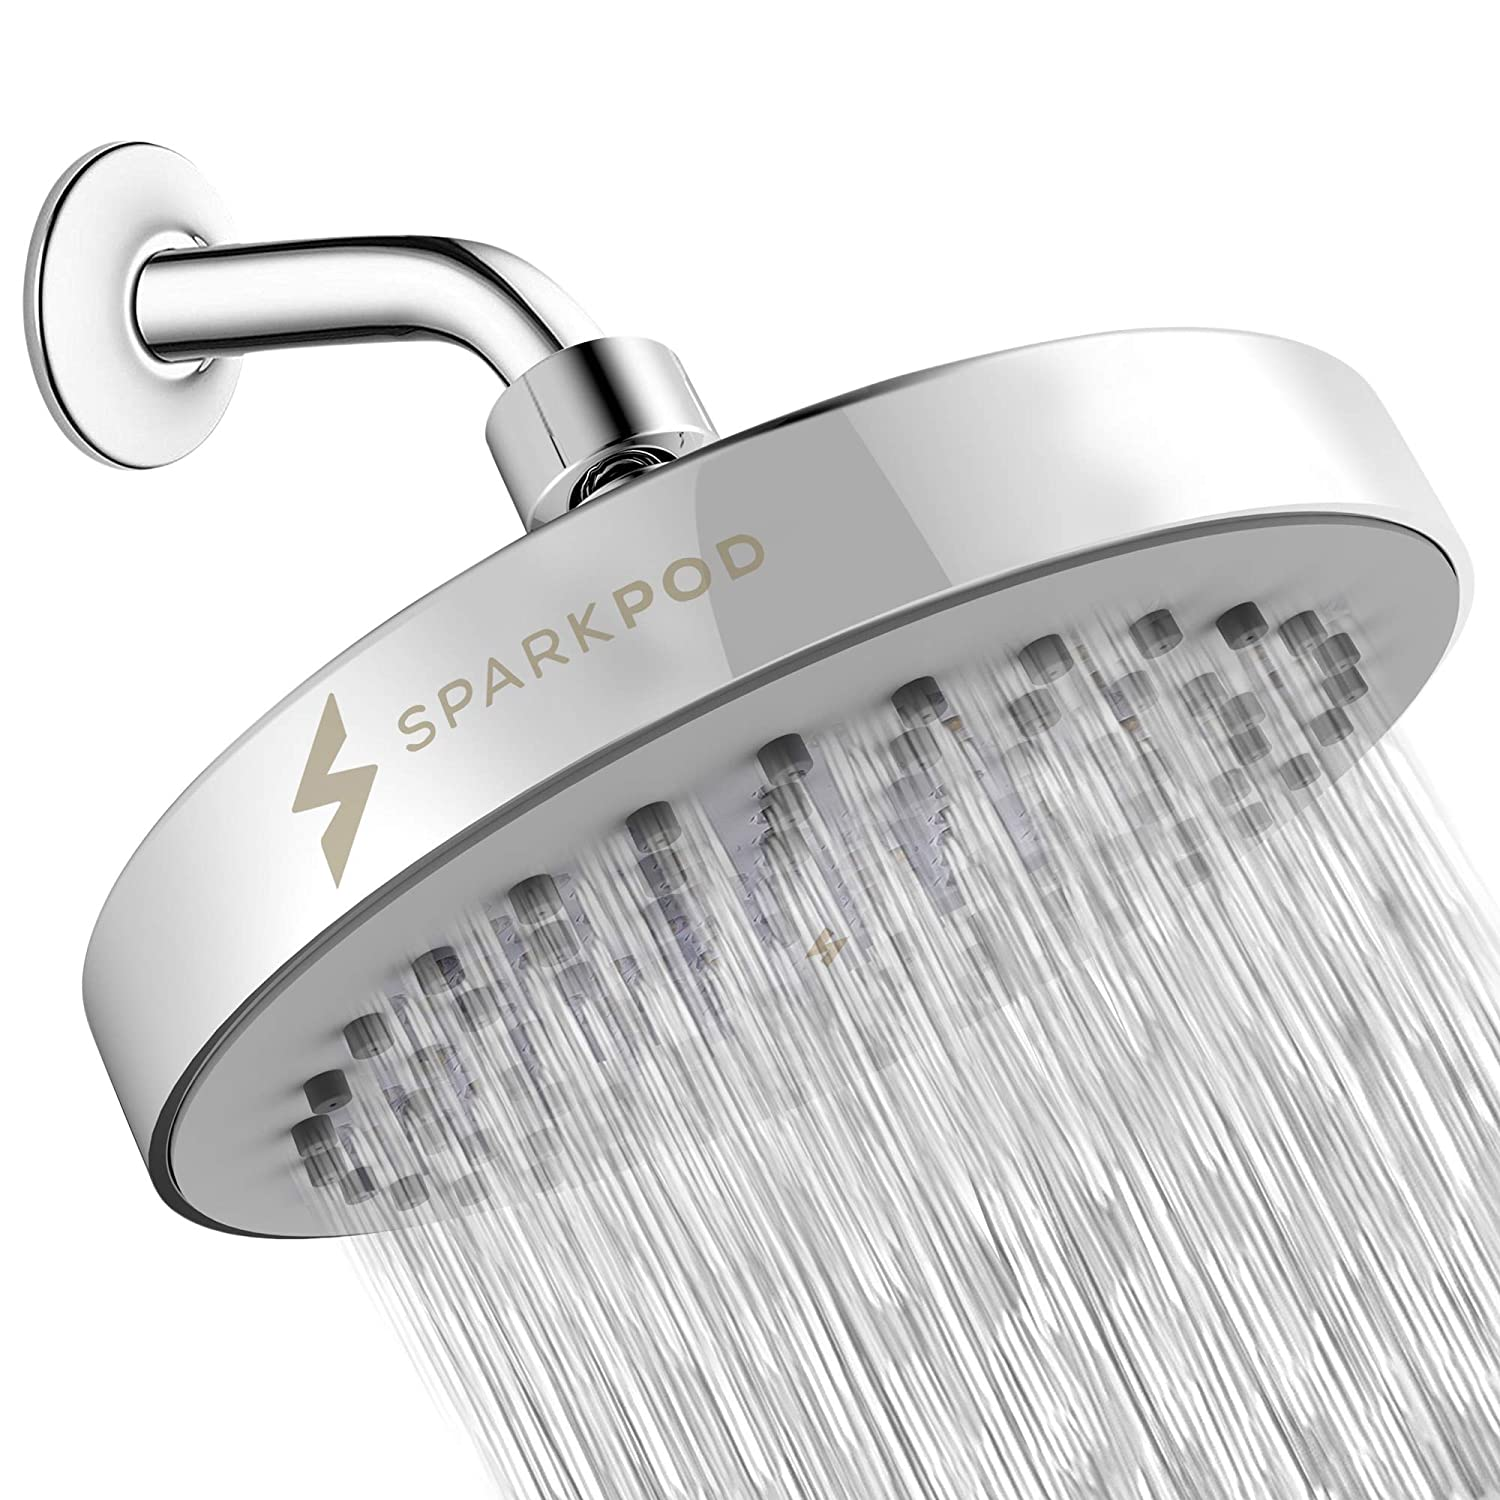 85bebfd3713 SparkPod Shower Head - High Pressure Rain - Luxury Modern Look - Easy Tool  Free Installation - The Perfect Adjustable   Heavy Duty Universal  Replacement For ...